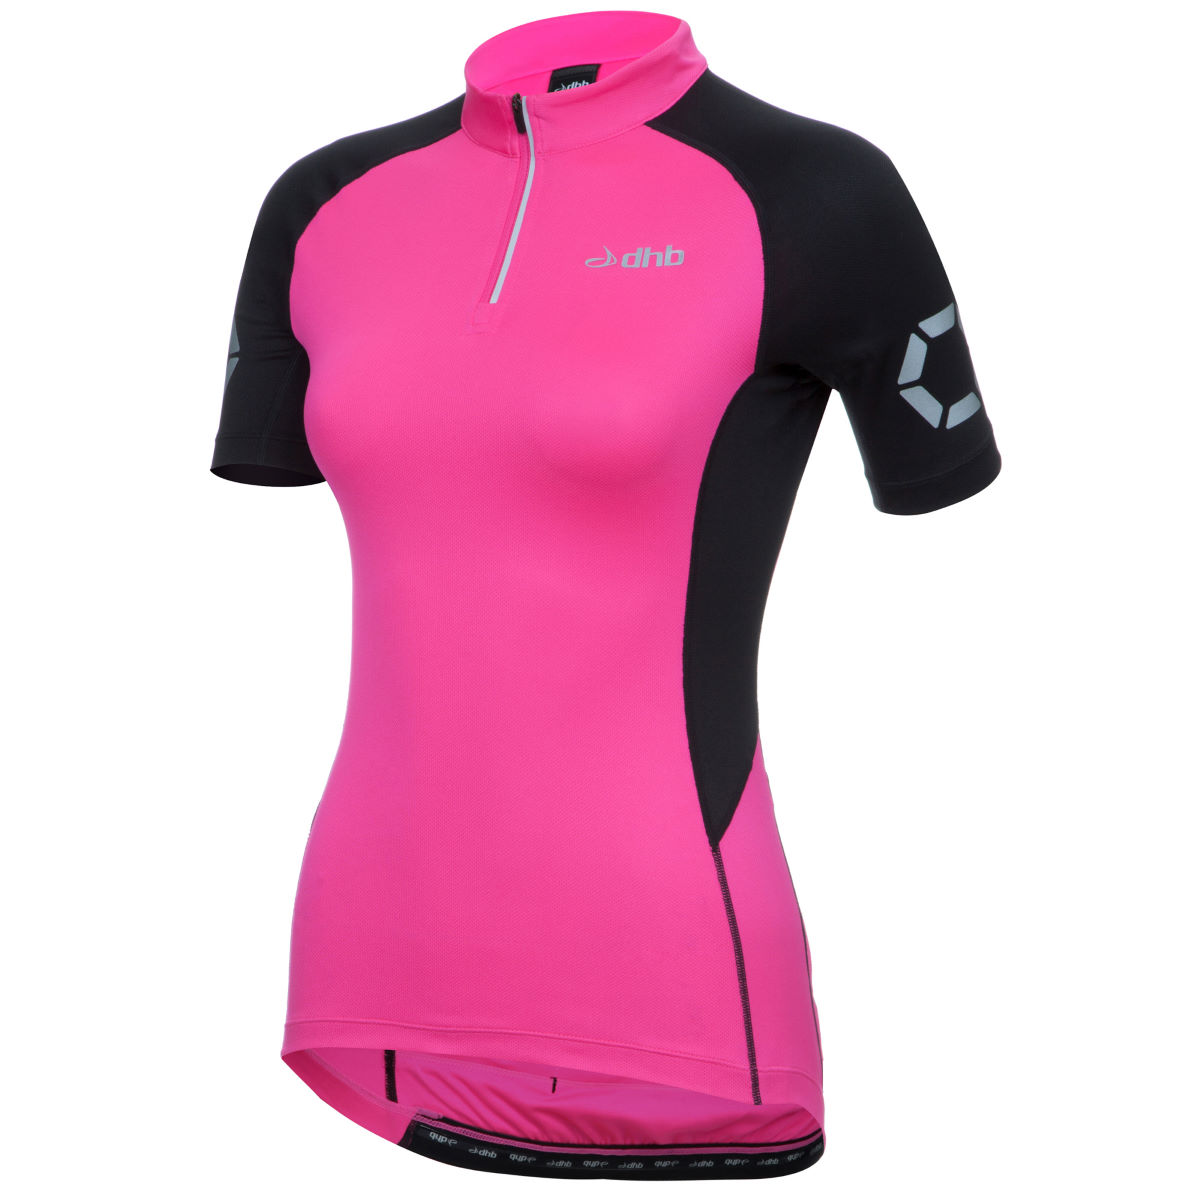 Maillot Femme dhb Flashlight (manches courtes) - 16 UK Rose Maillots